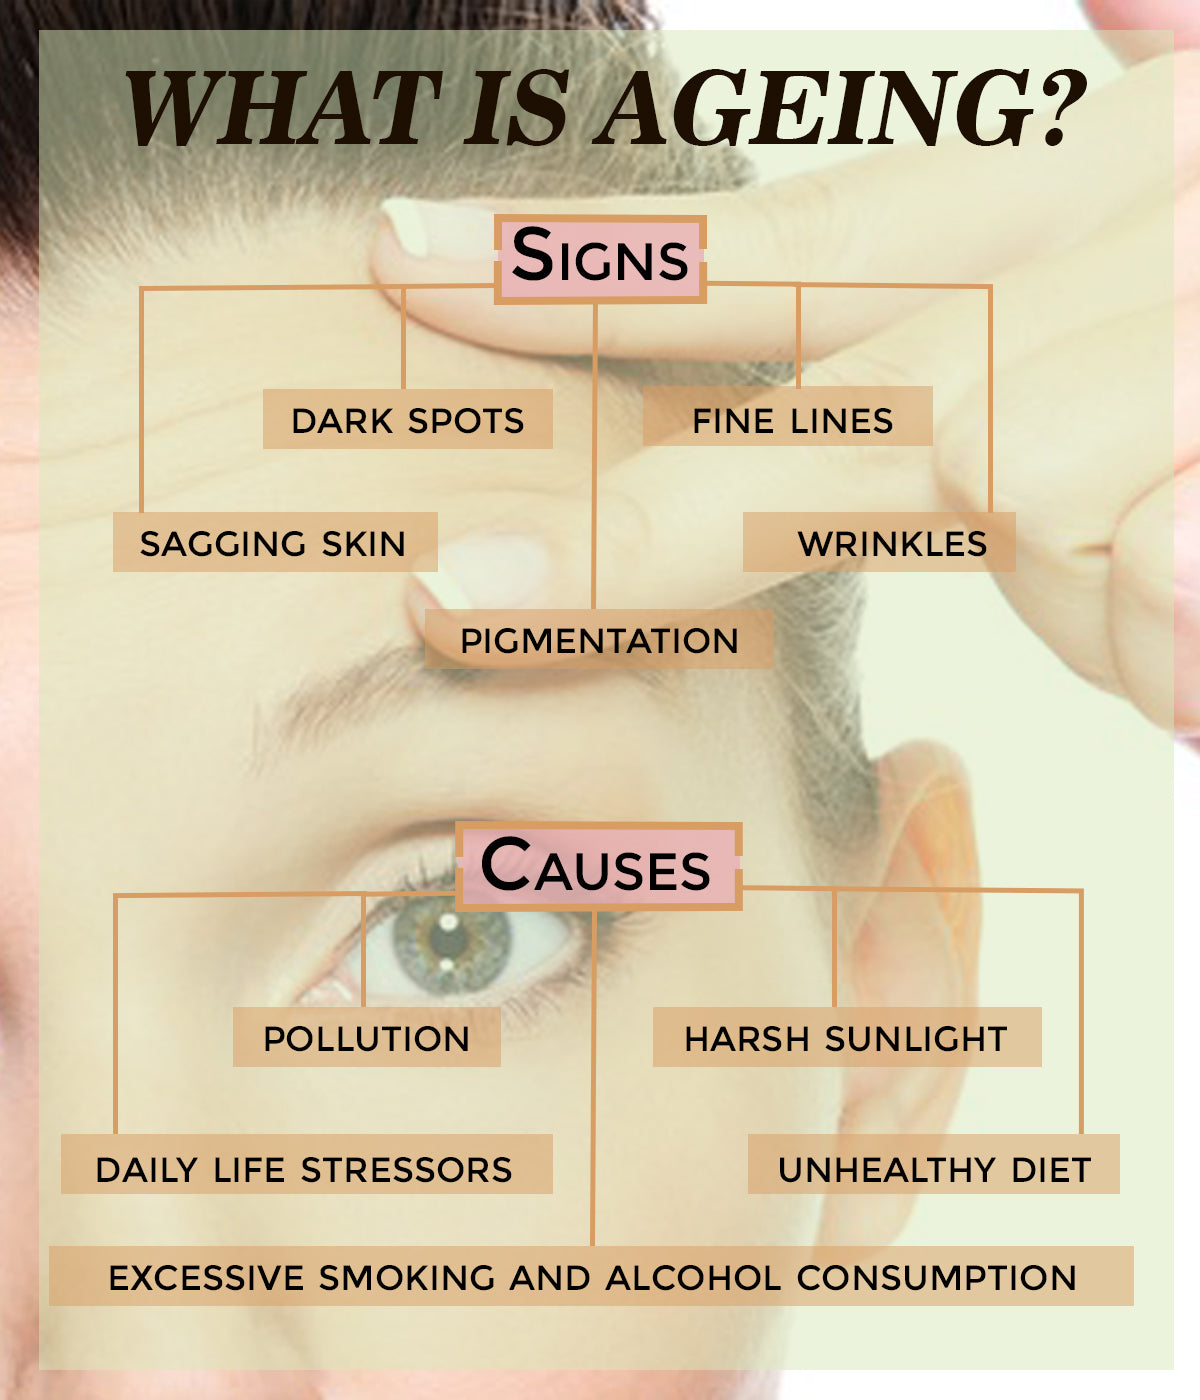 This is an image of what is ageing on www.sublimelife.in